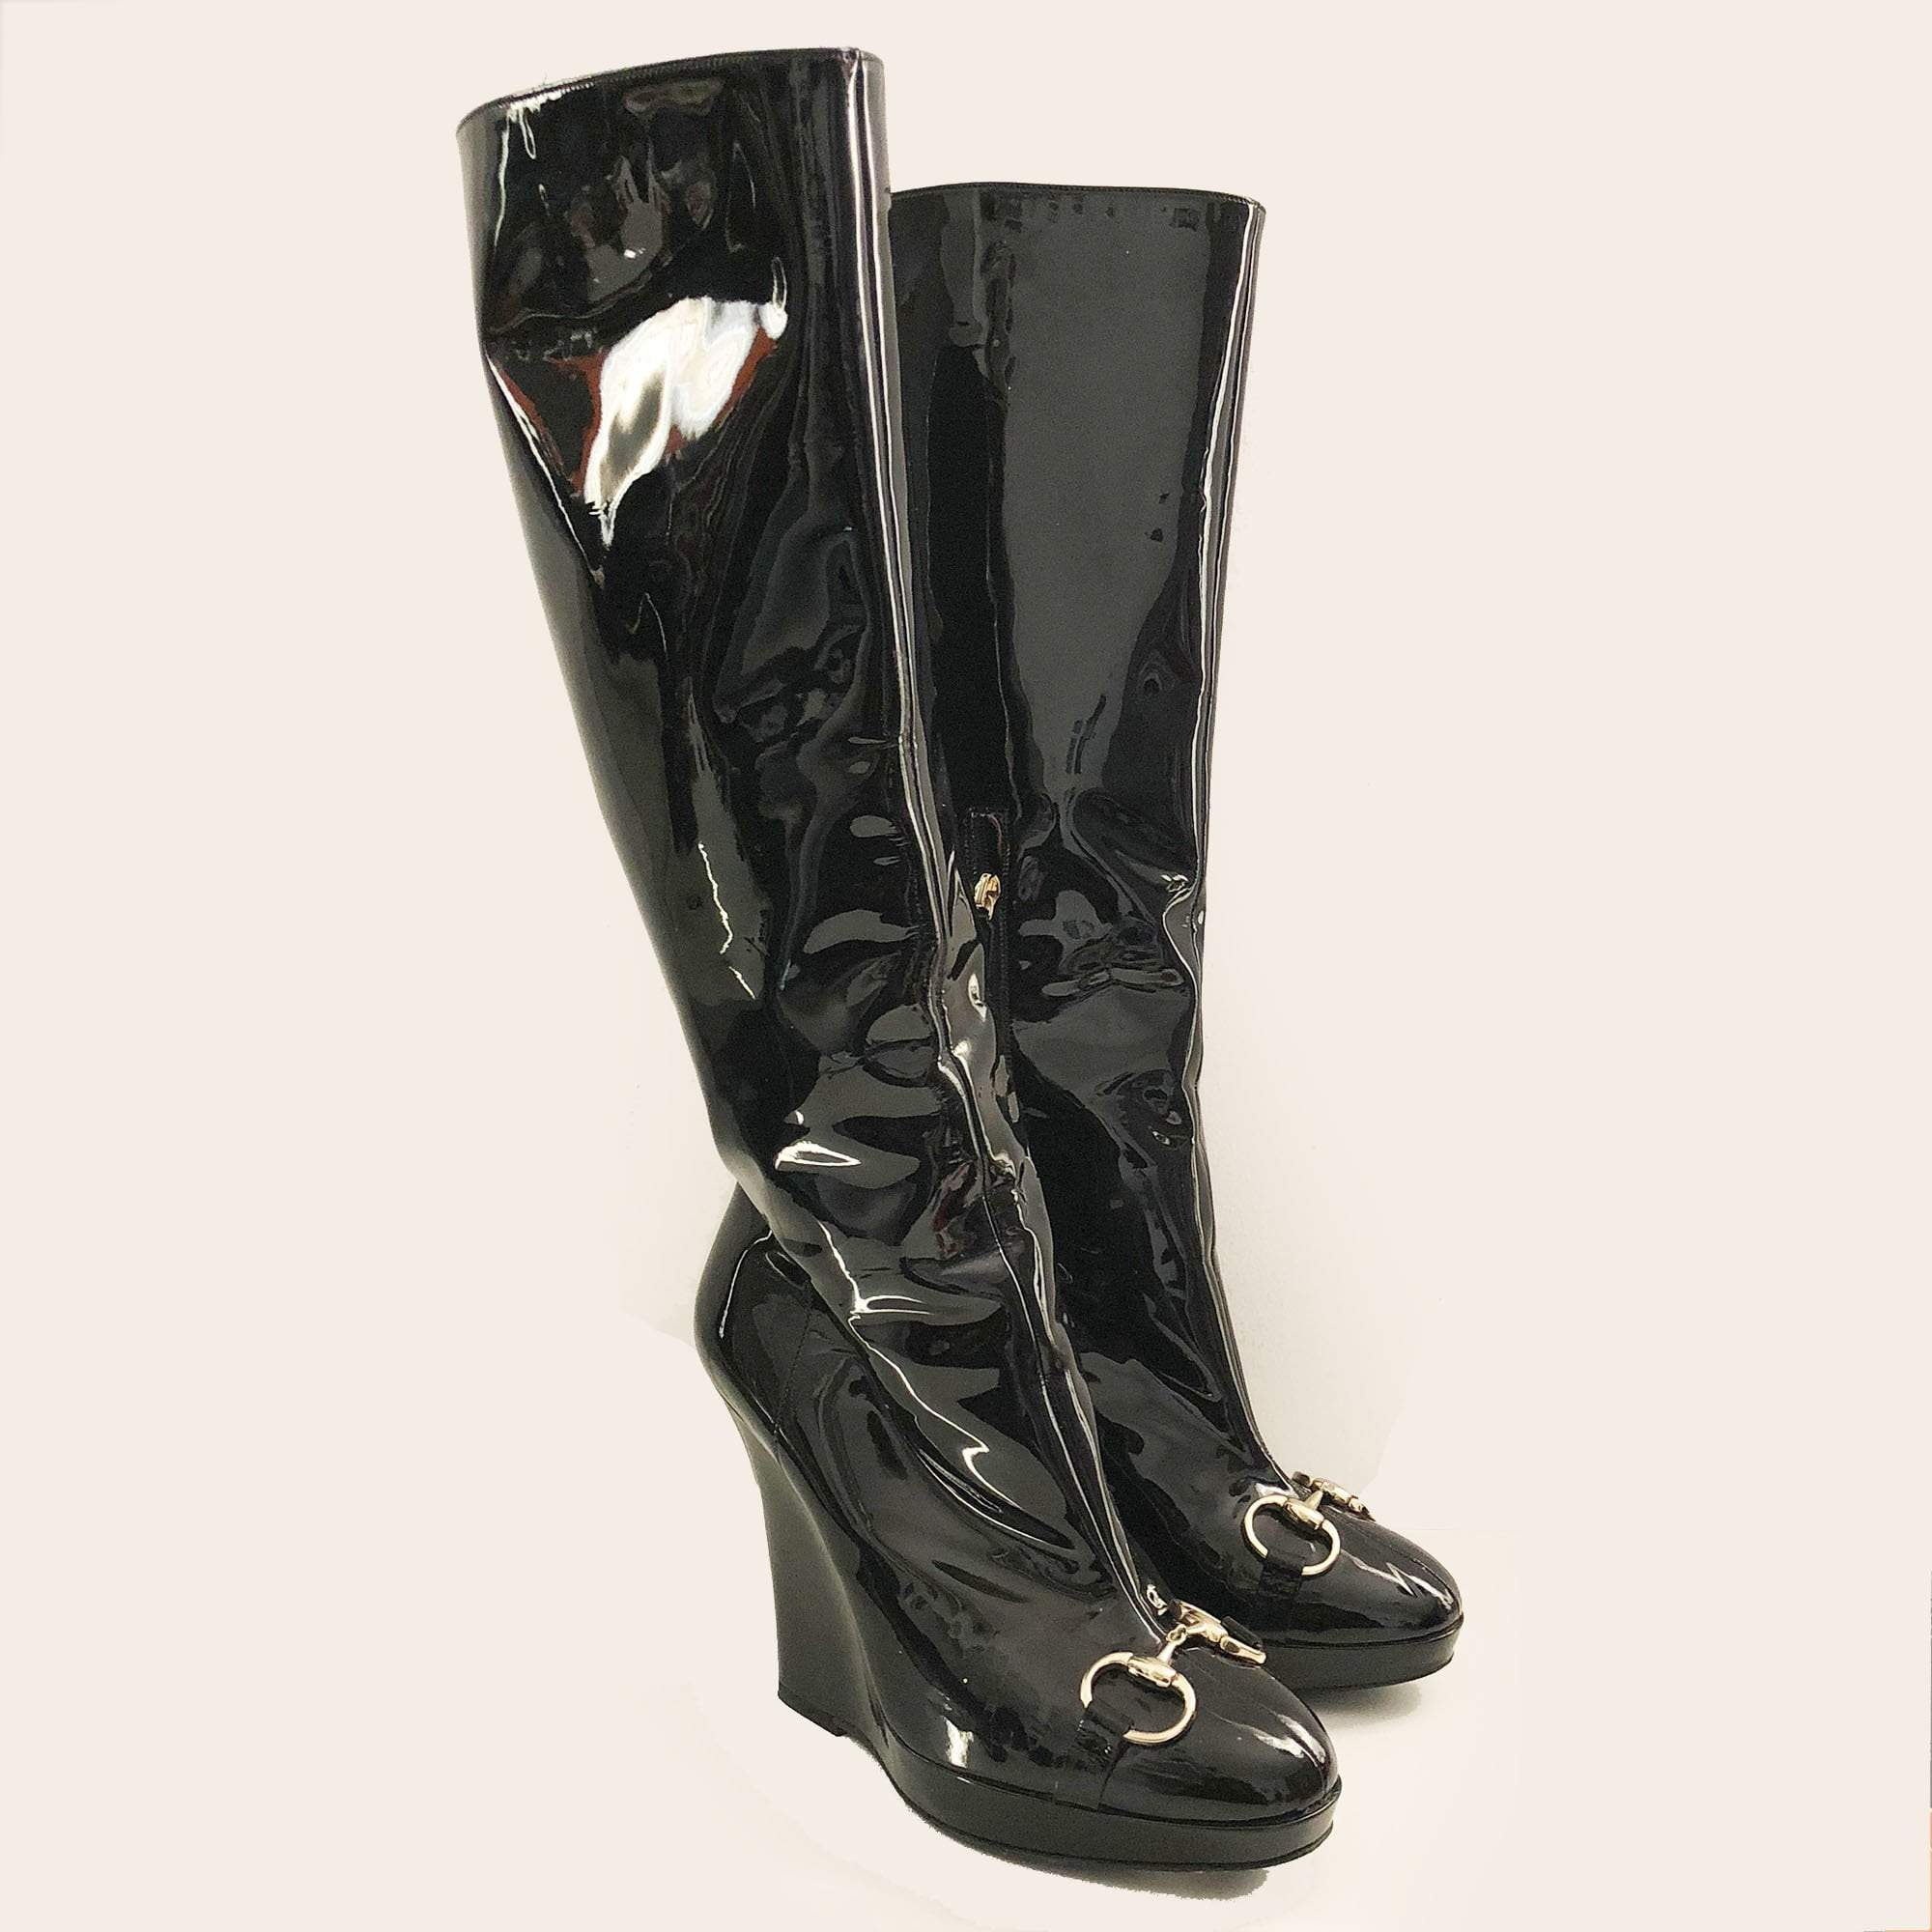 338fd2b40eb Gucci Patent Leather High Wedge Boots – Garderobe